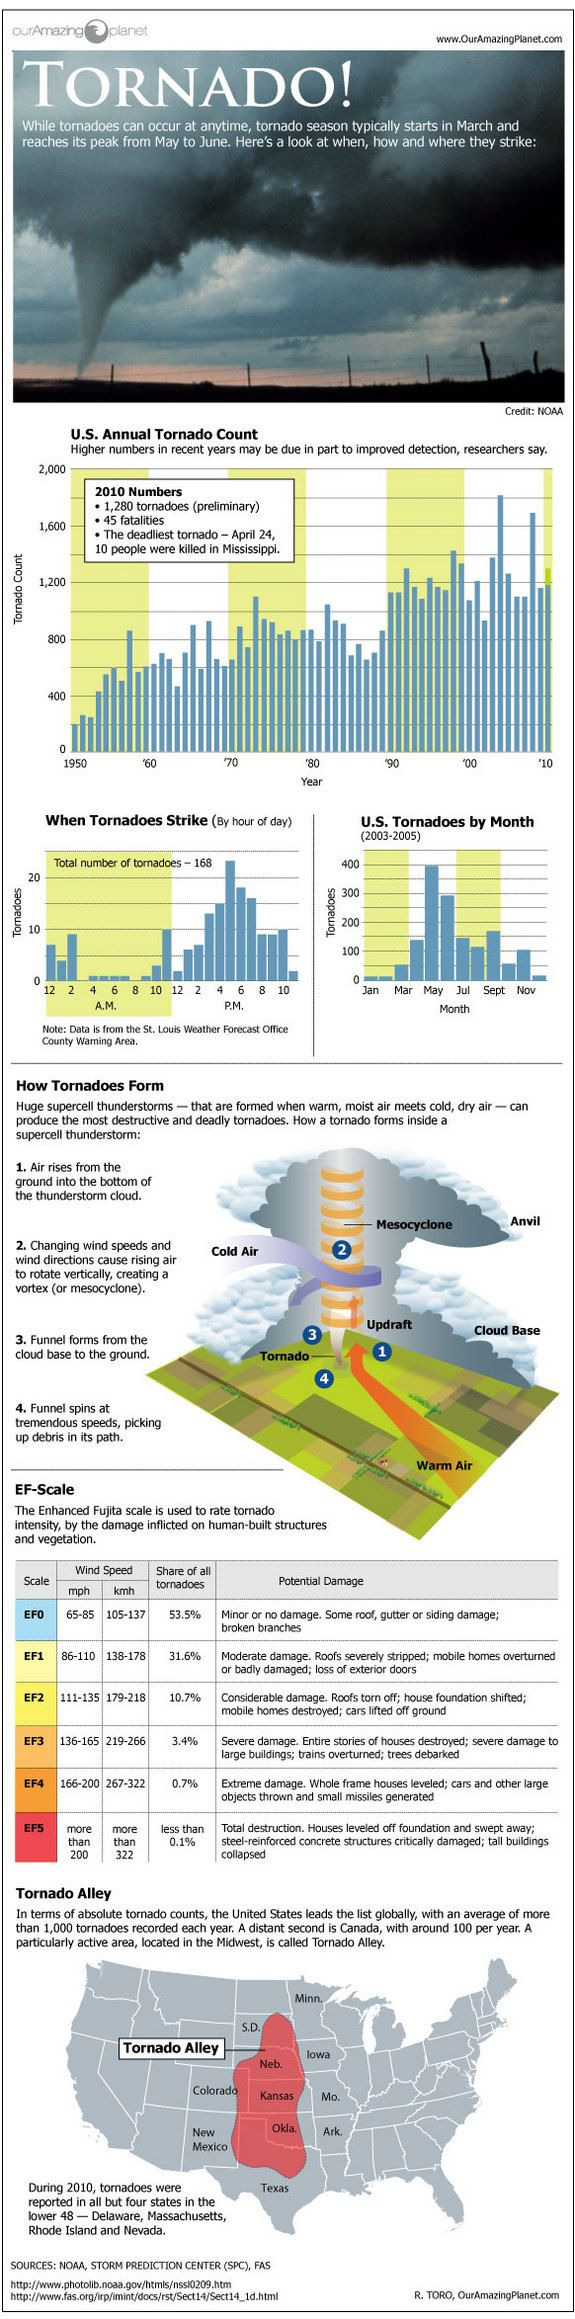 Tornado chart, click to see full size